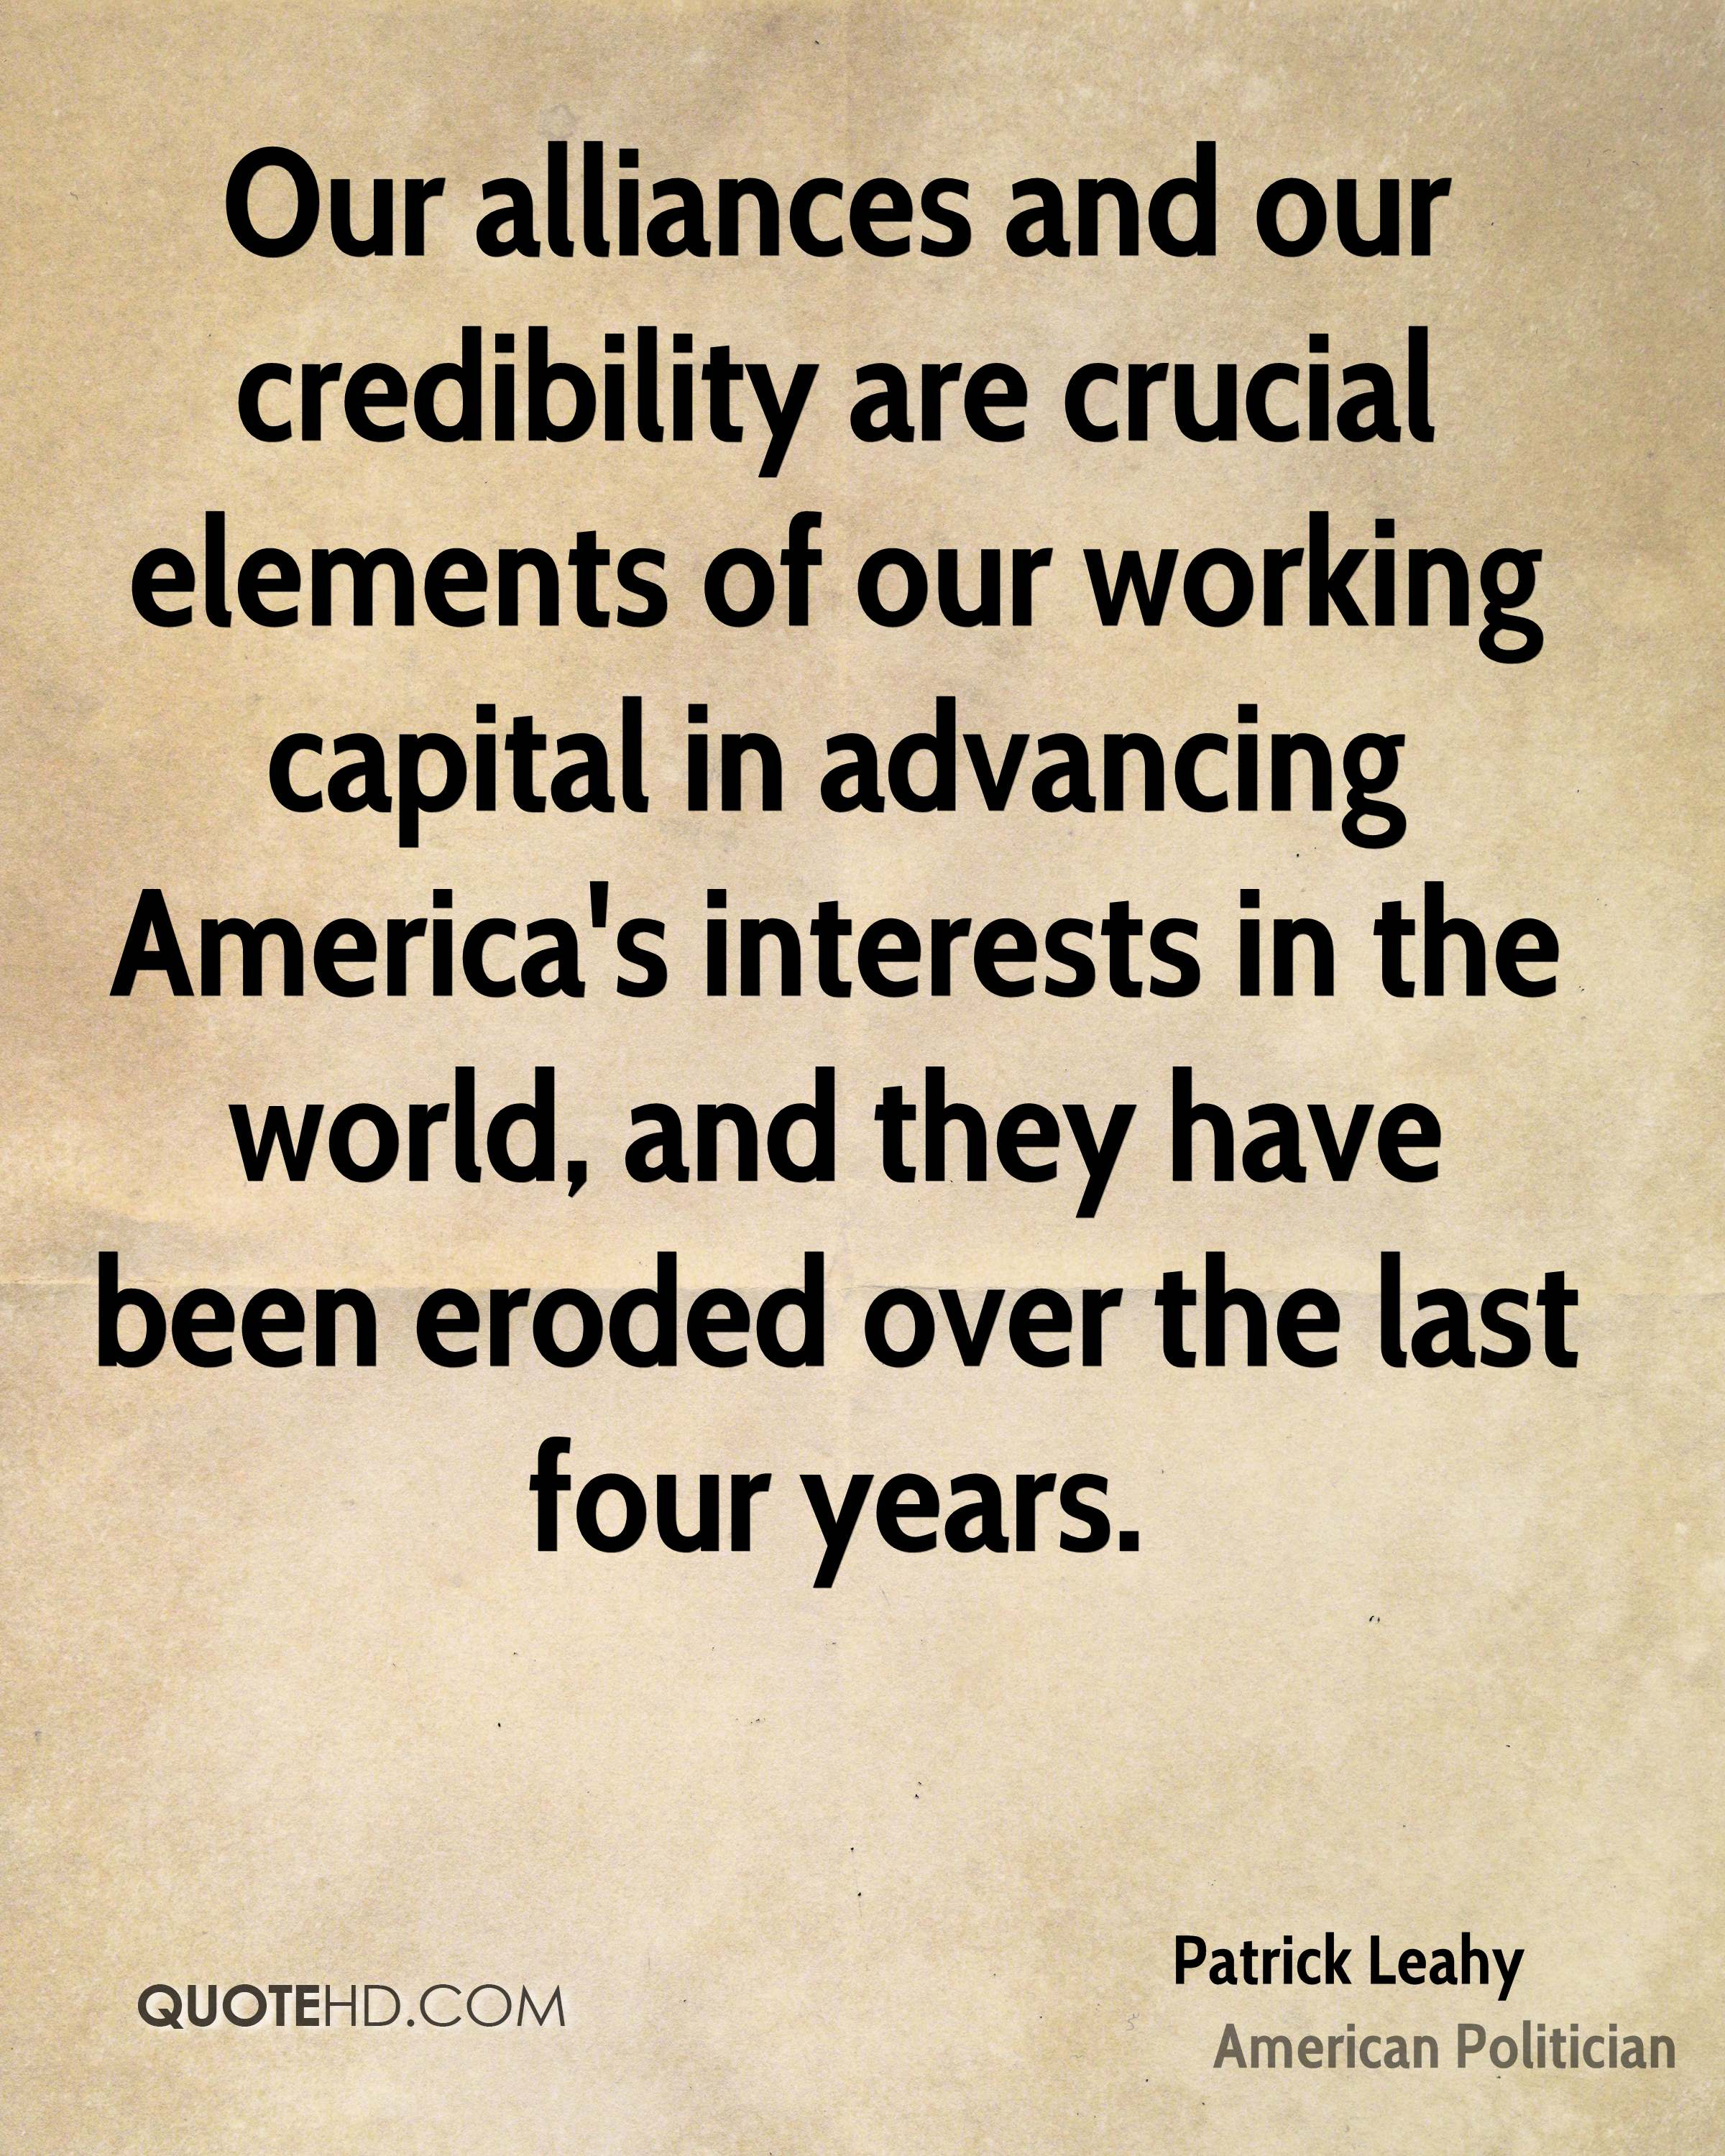 Our alliances and our credibility are crucial elements of our working capital in advancing America's interests in the world, and they have been eroded over the last four years.